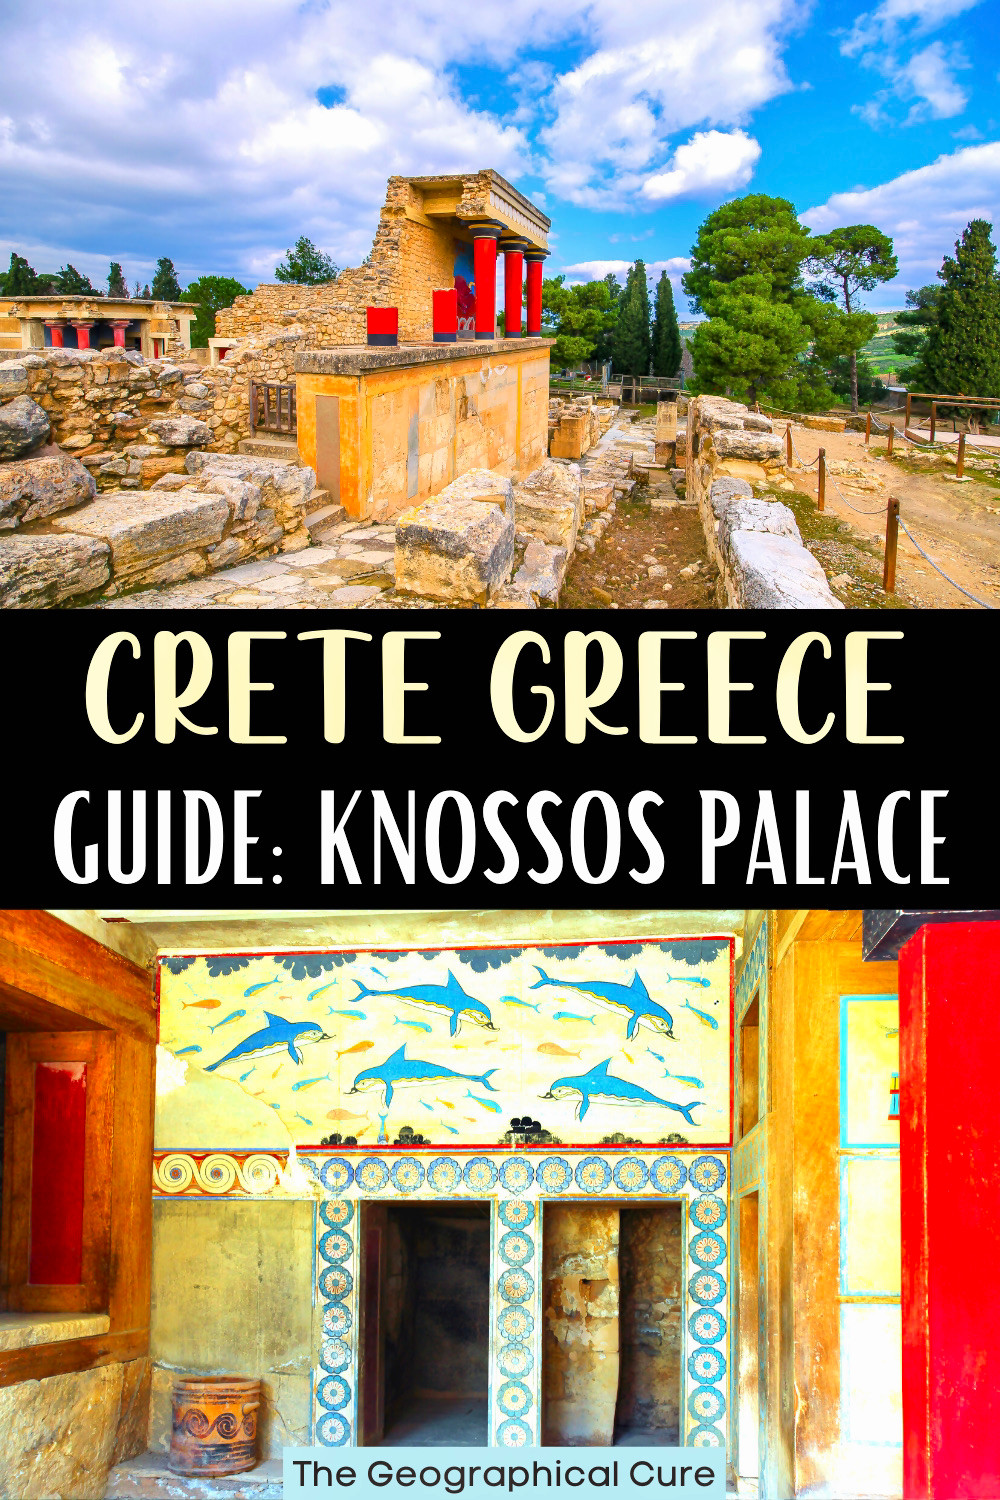 ultimate guide to Knossos Palace on the island of Crete